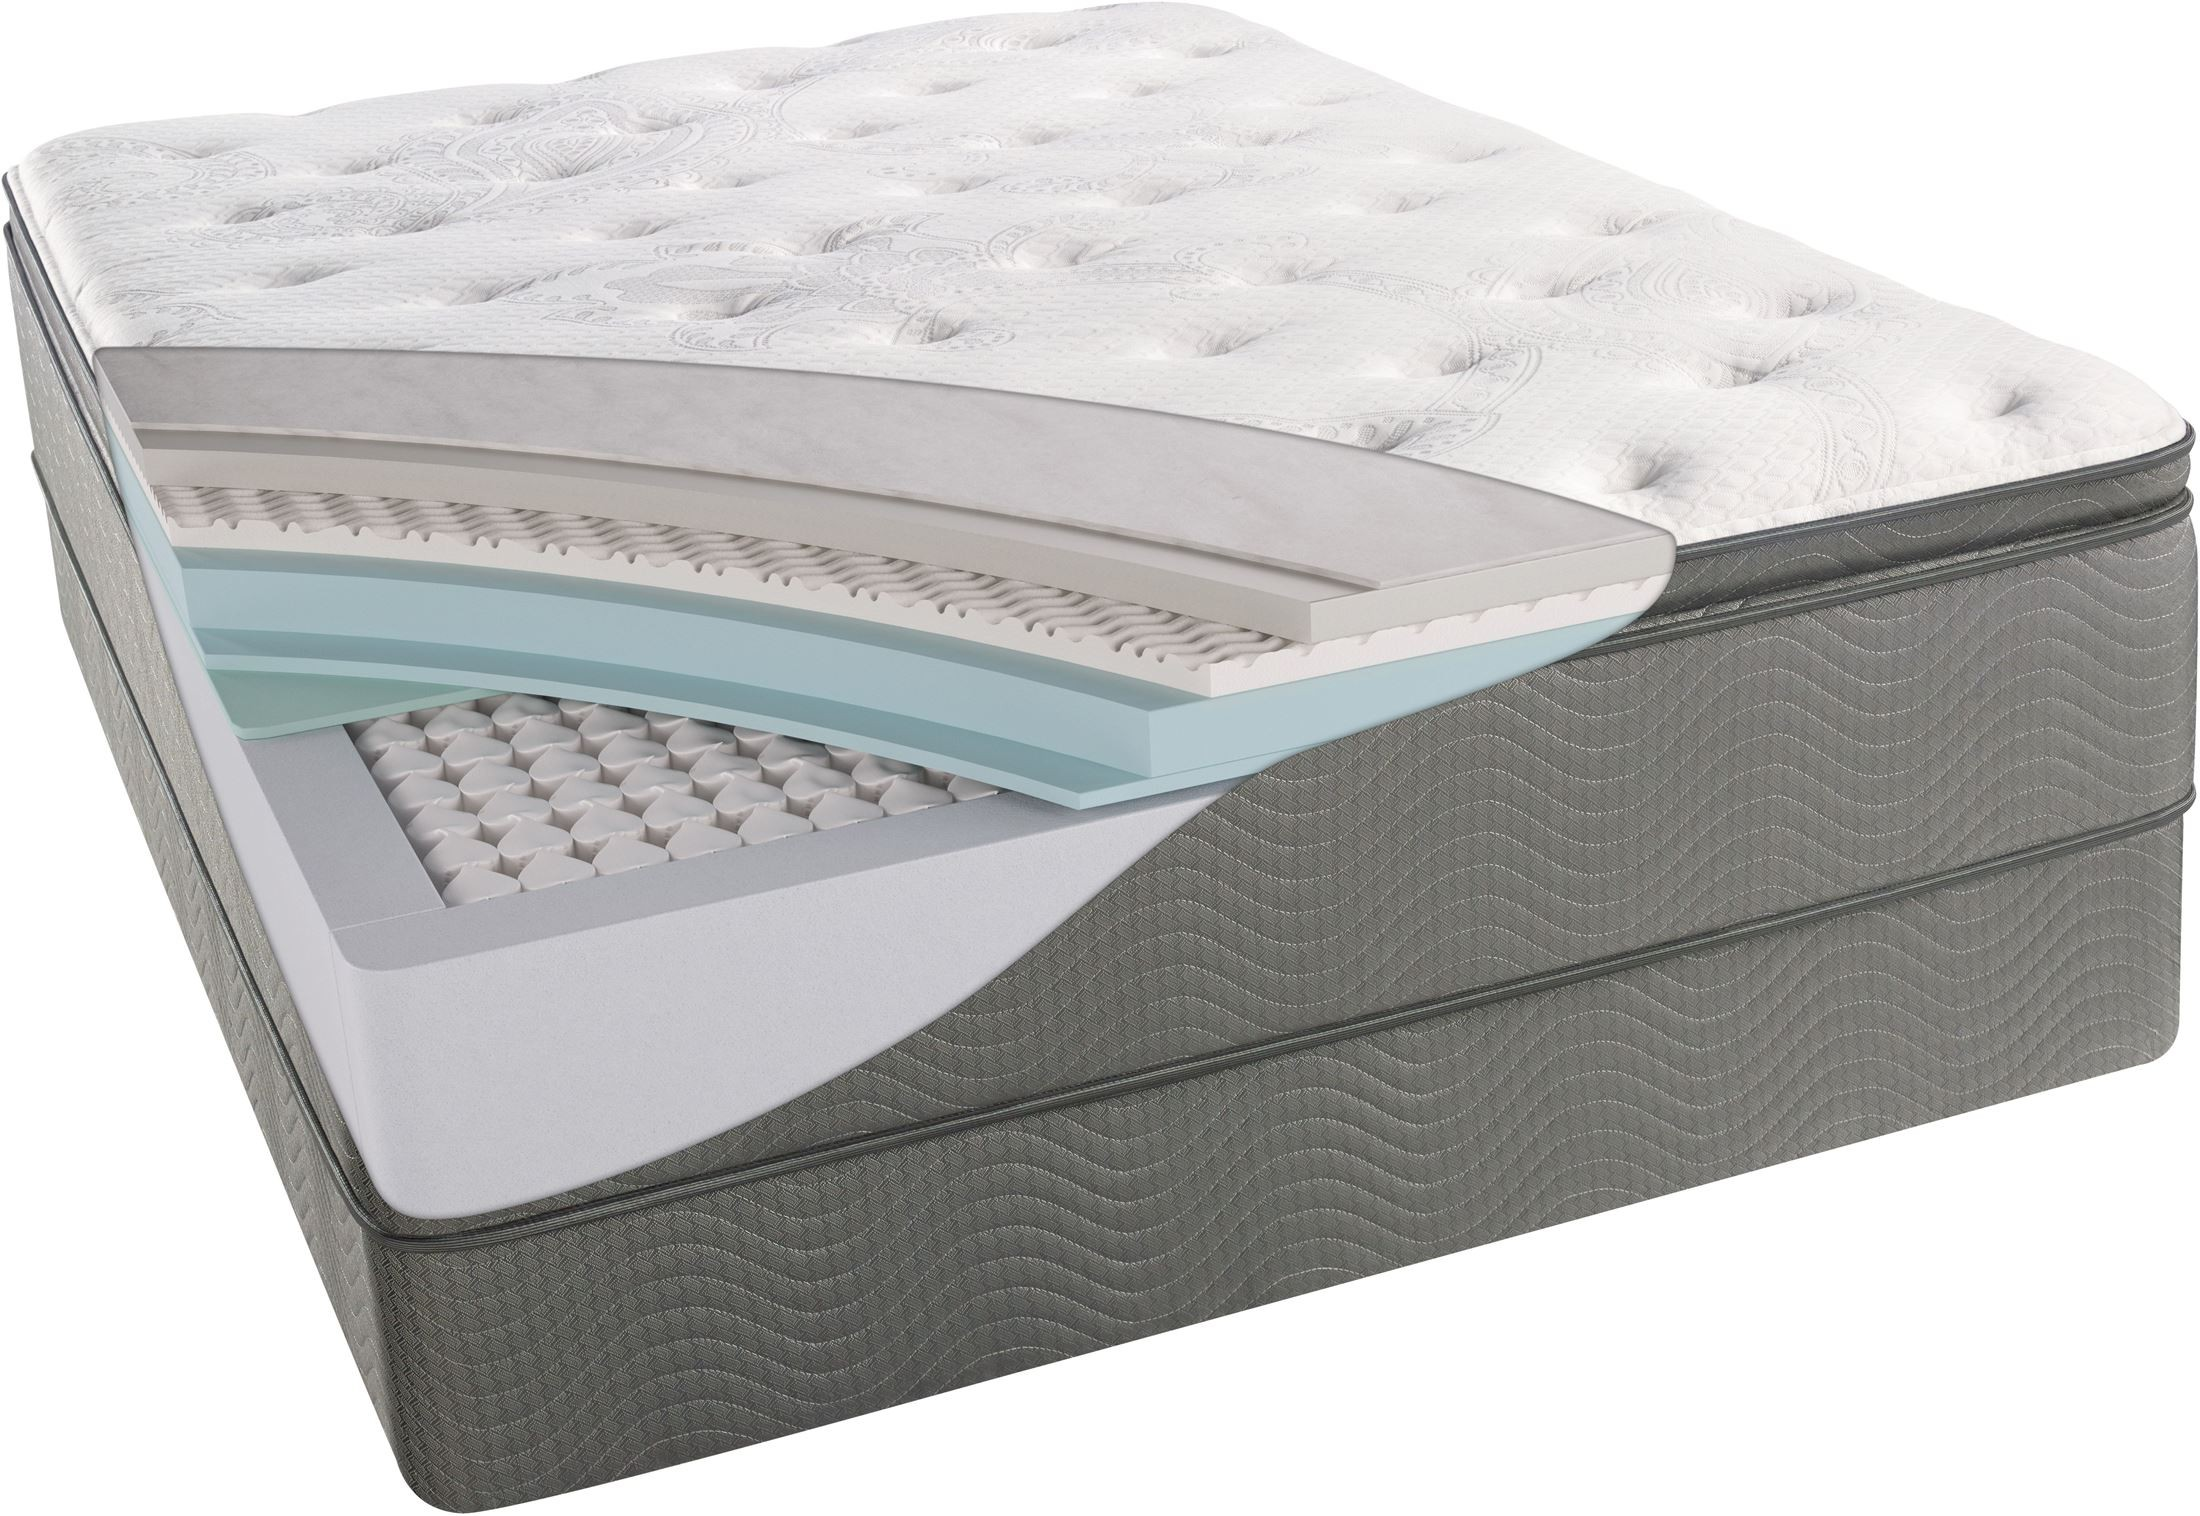 beautysleep allegra pillow top plush cal king size mattress with foundation from simmons. Black Bedroom Furniture Sets. Home Design Ideas